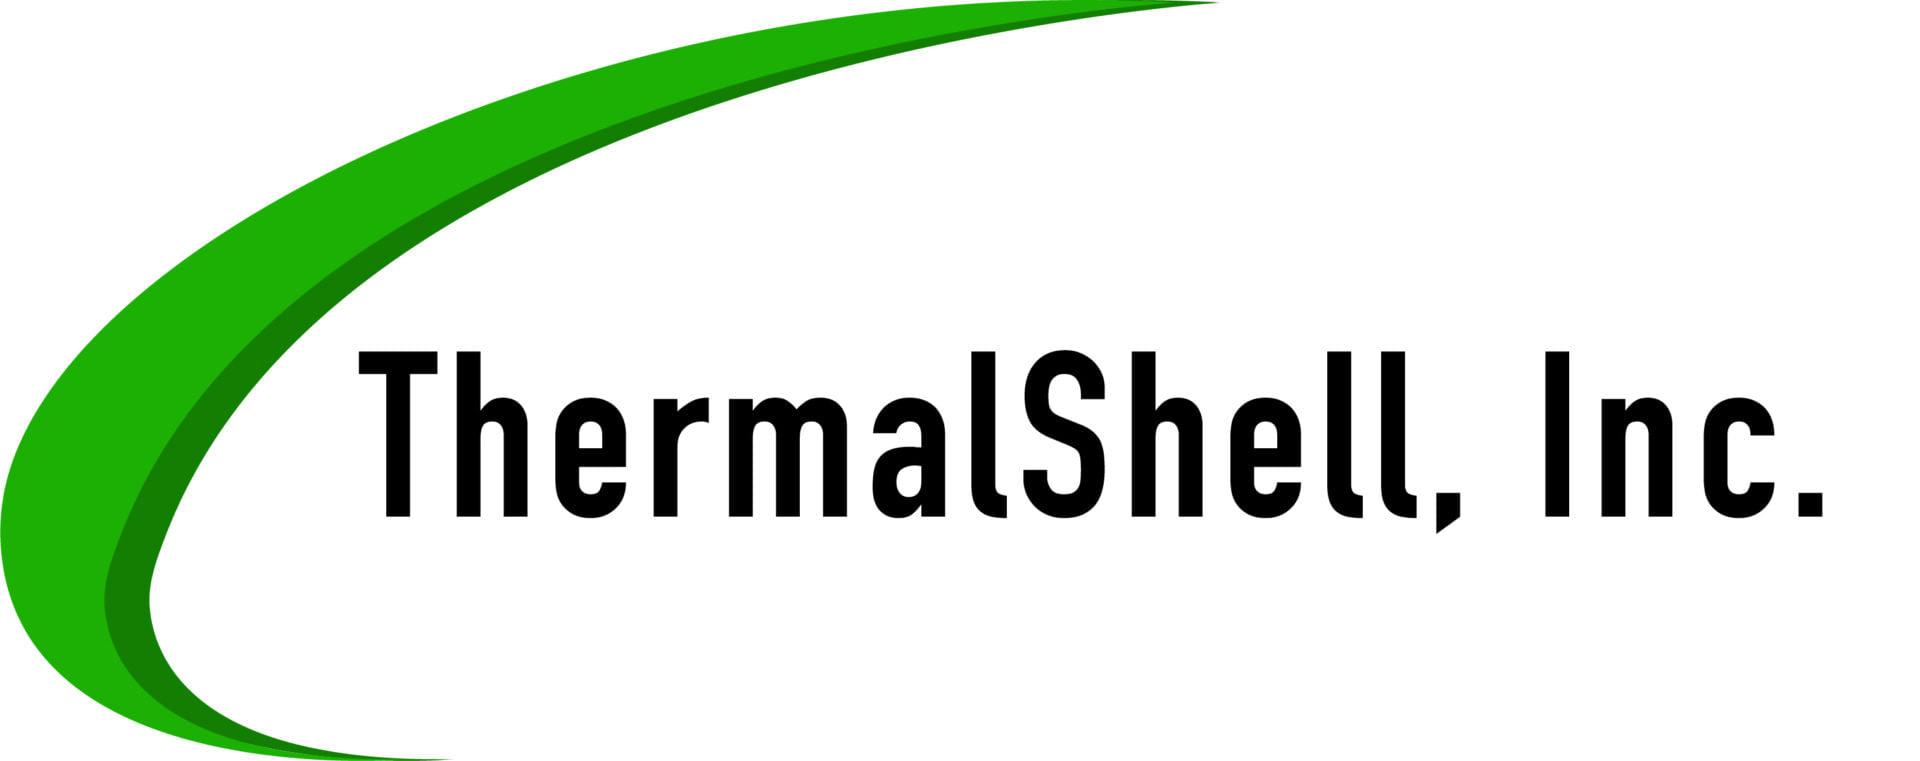 ThermalShell